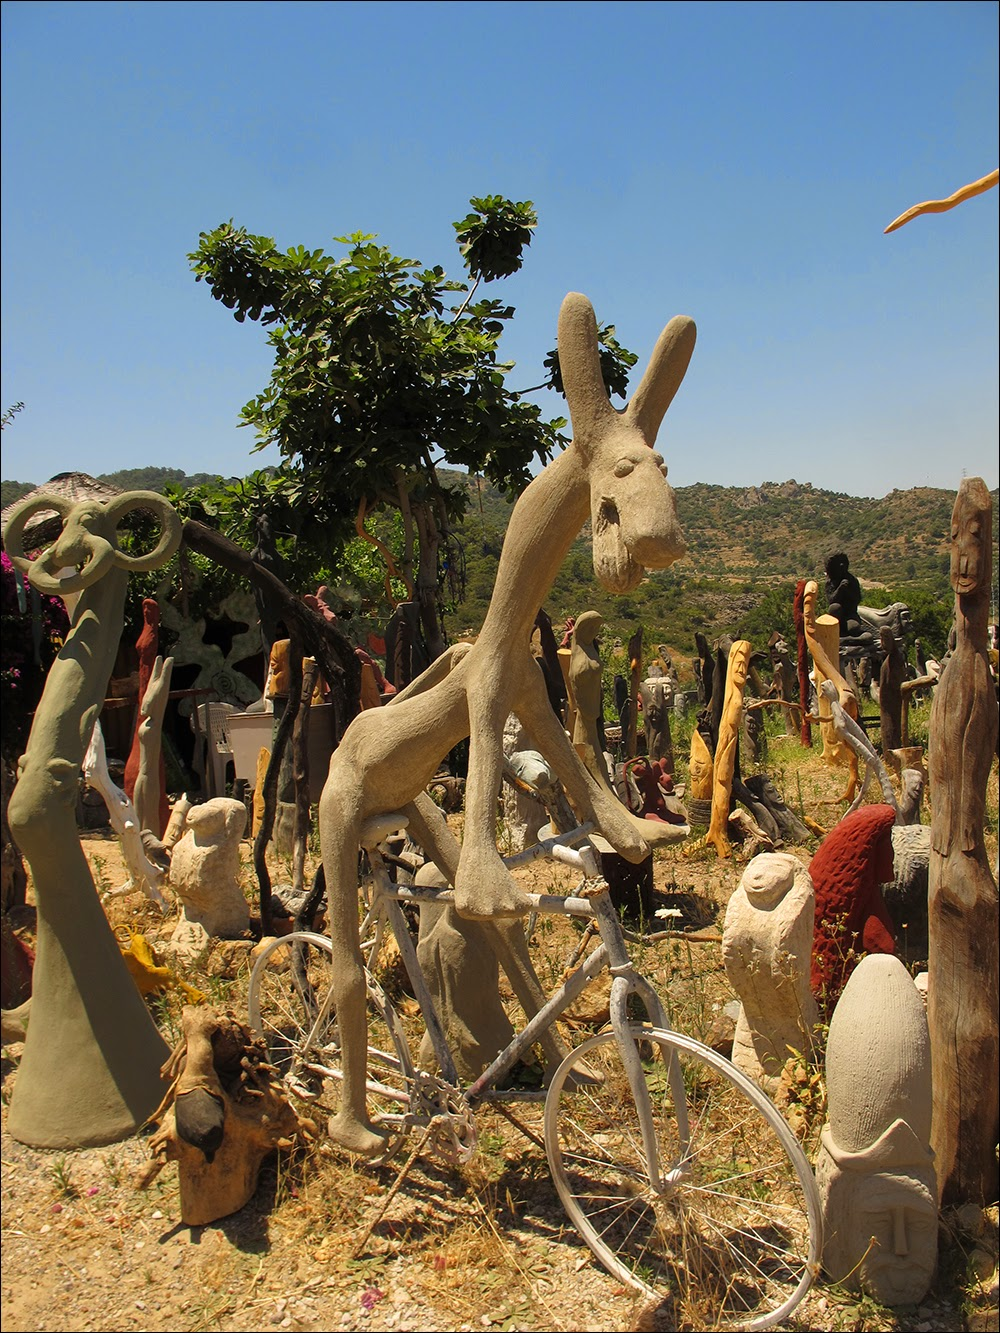 In An Outburst Of Creativity A Multitude Of Sculptures Arose On The Site,  Mostly Lifesize, Often Totemlike, Made From Treetrunks, Wood Or Concrete,